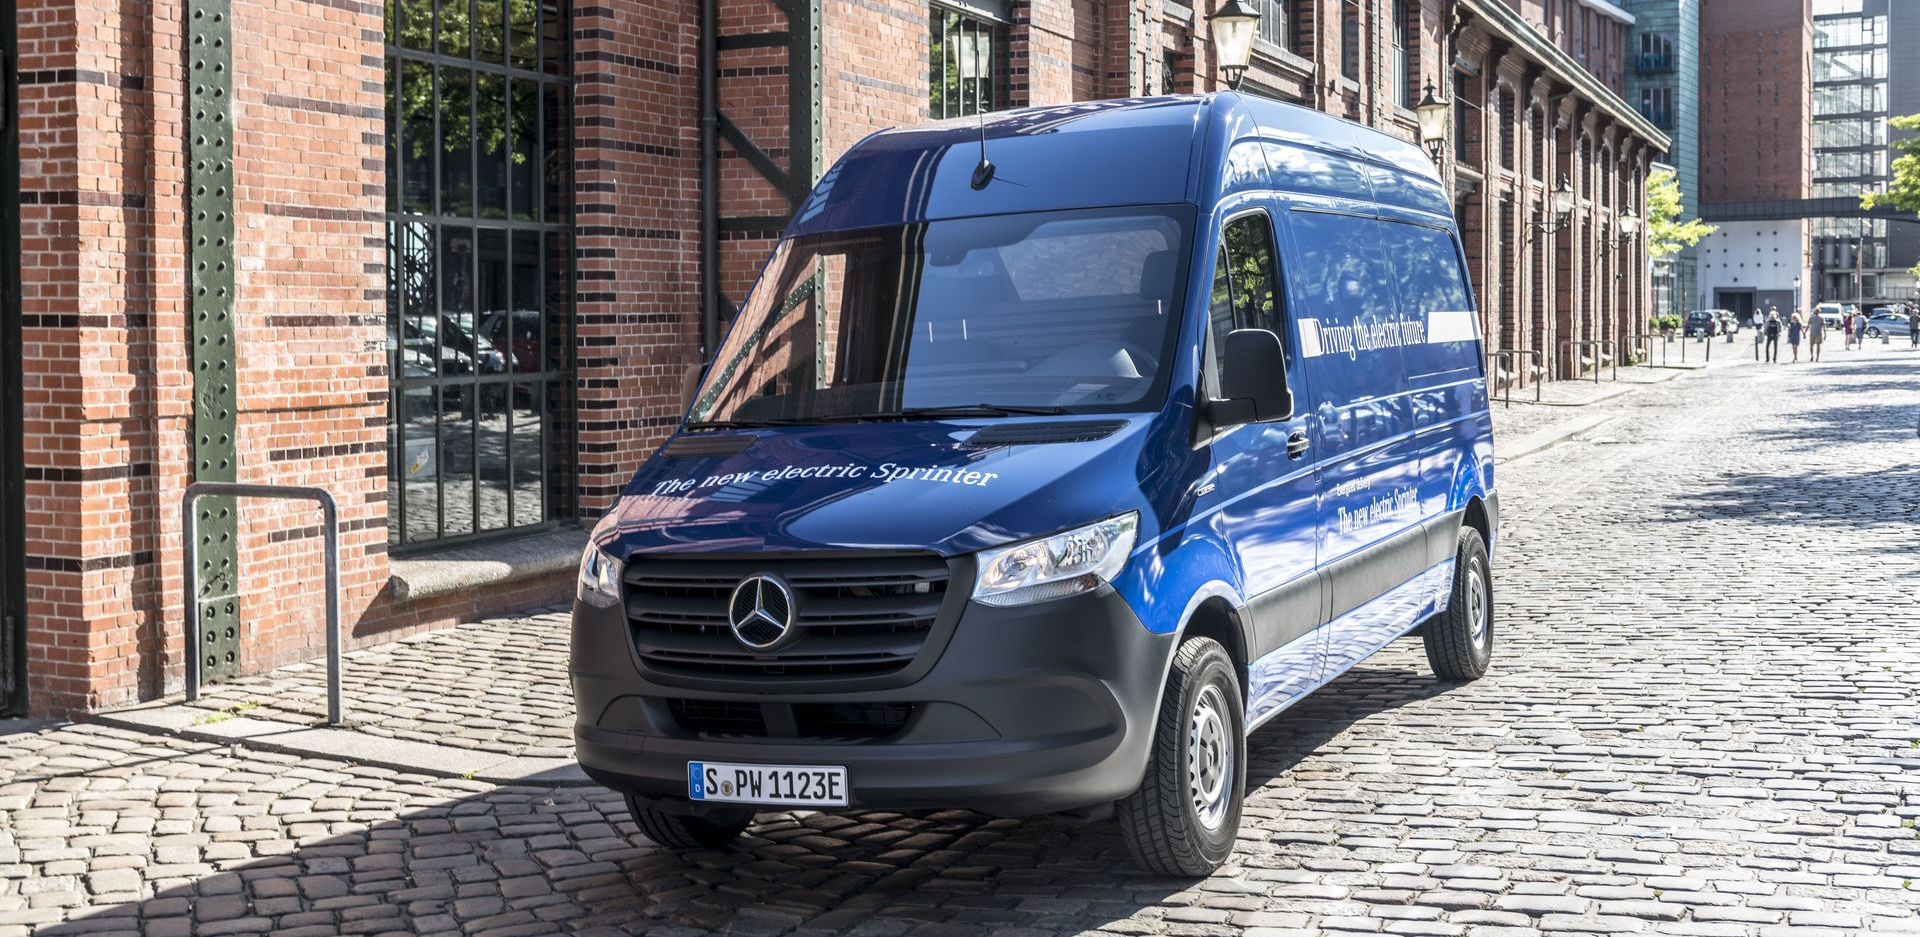 Elon Musk says he's interested in developing cargo vans with Daimler